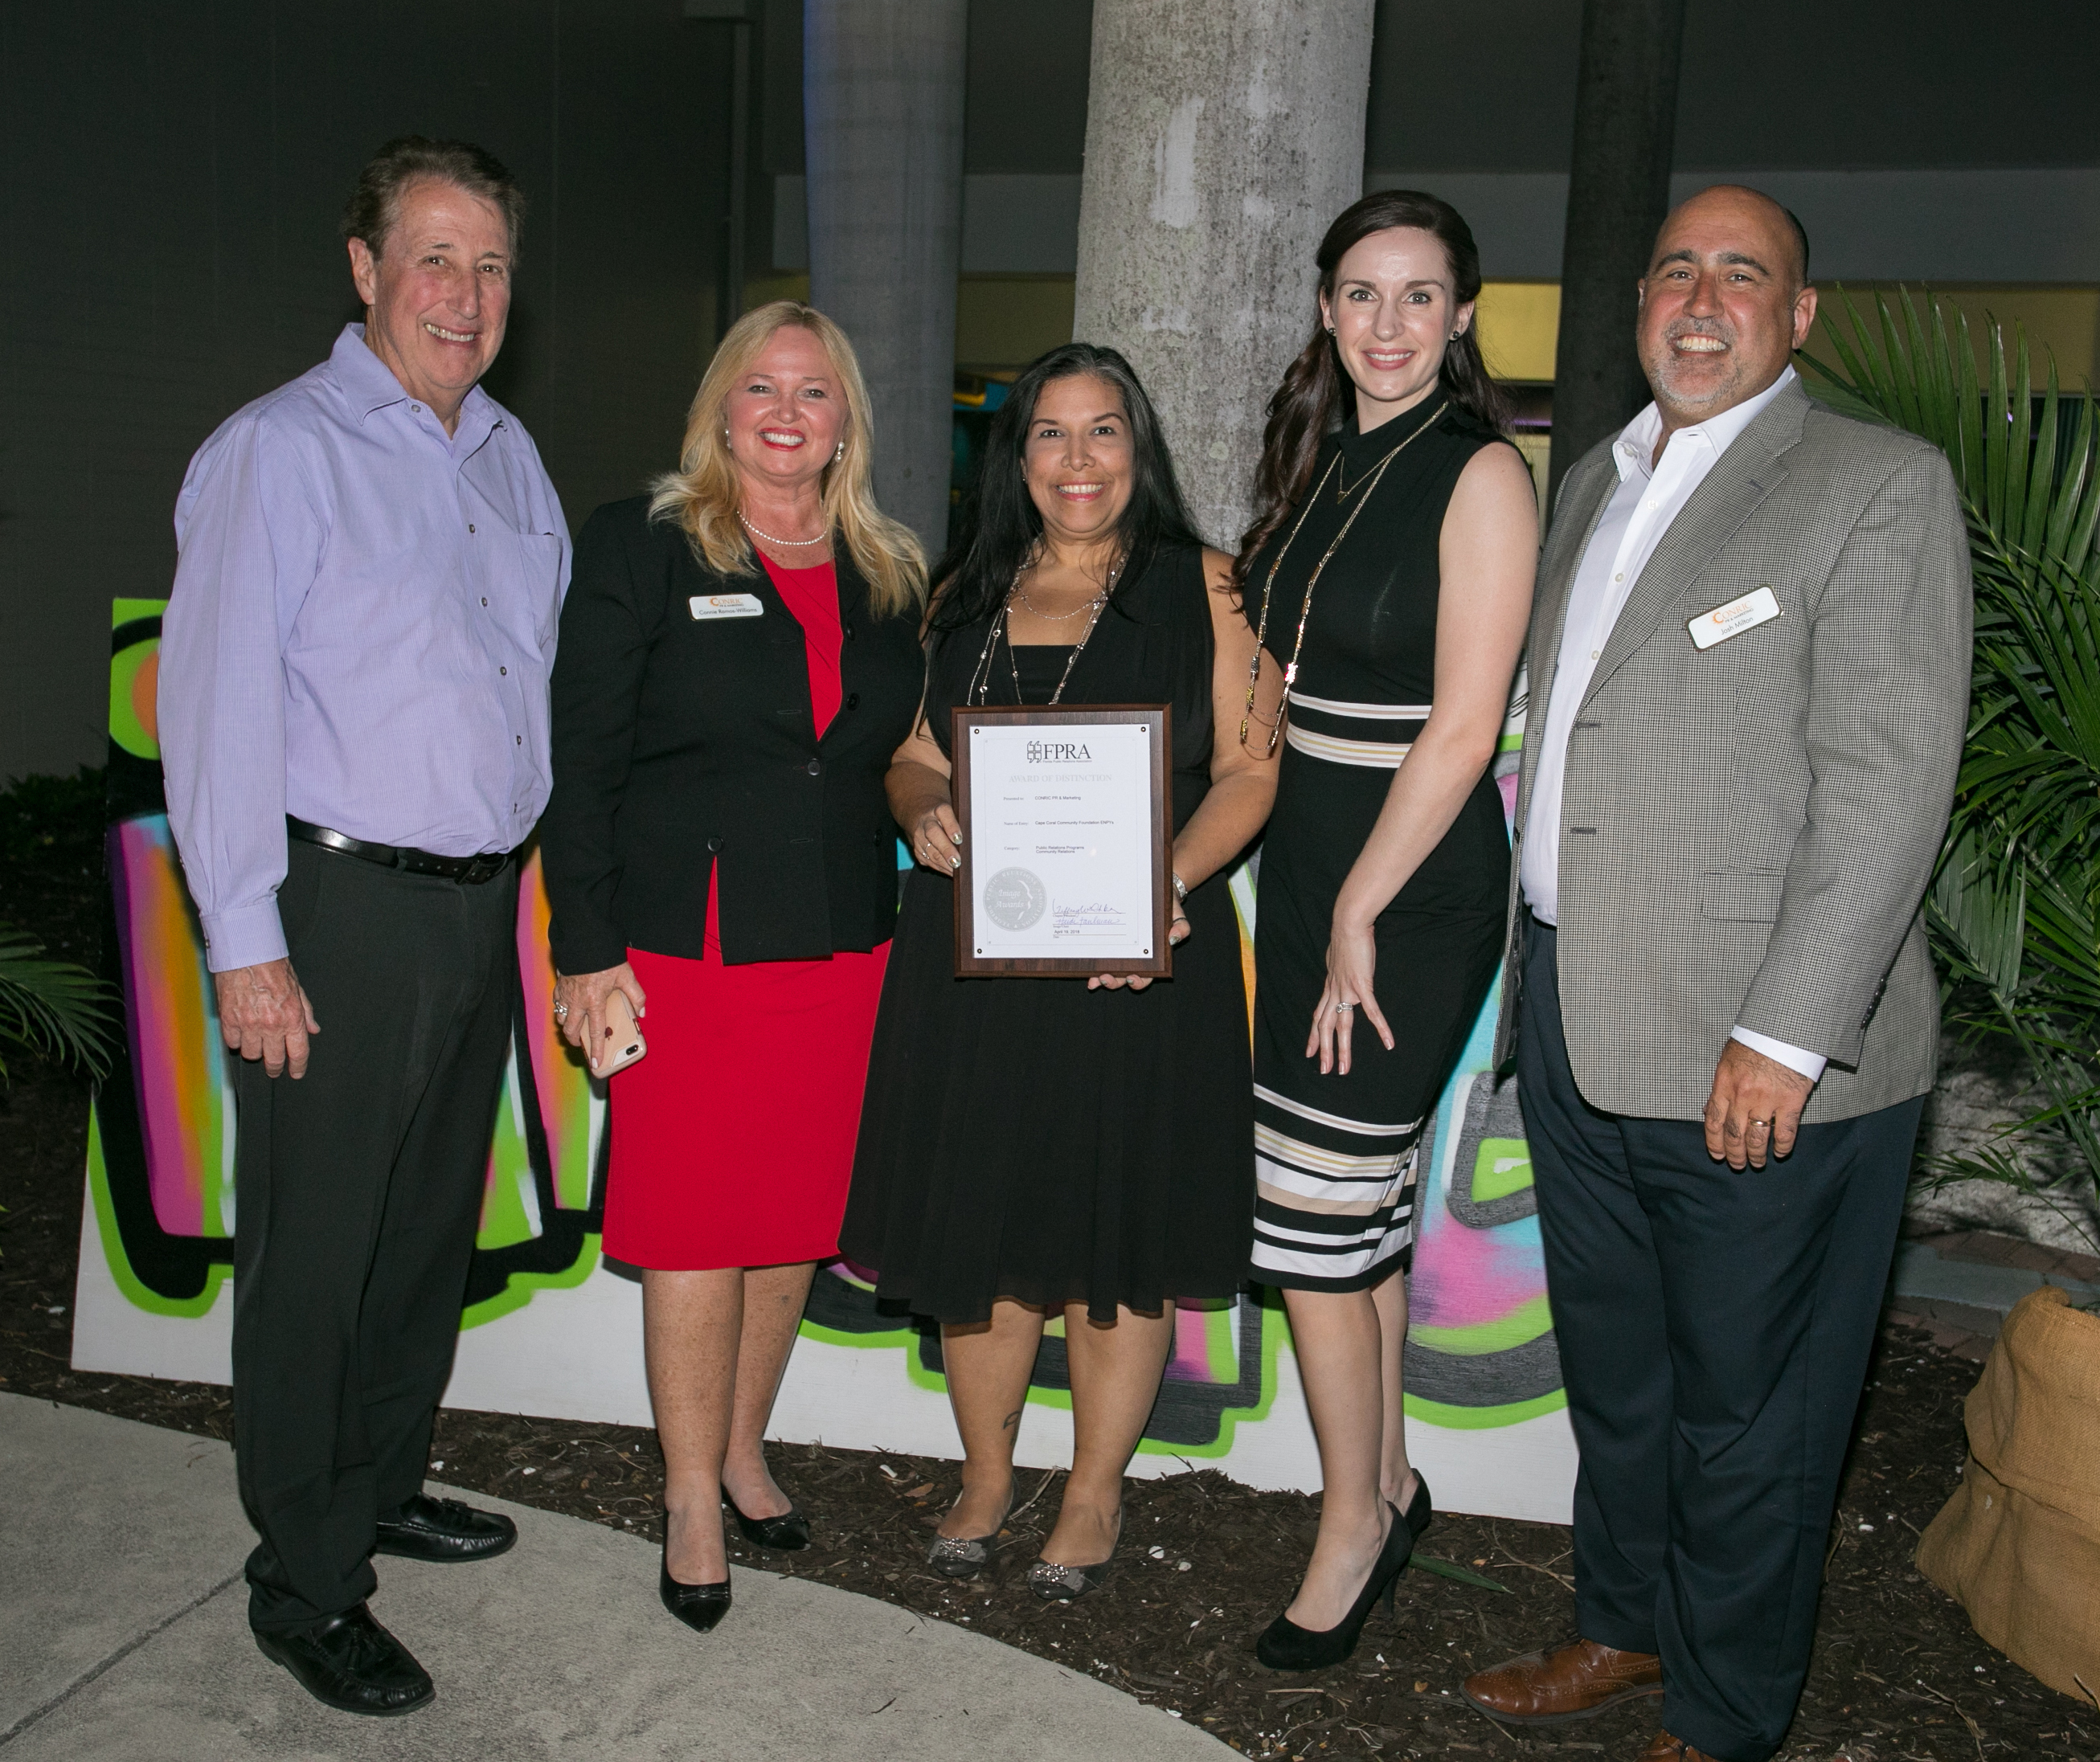 CONRIC PR & Marketing wins Award of Distinction from SWFL chapter of FPRA